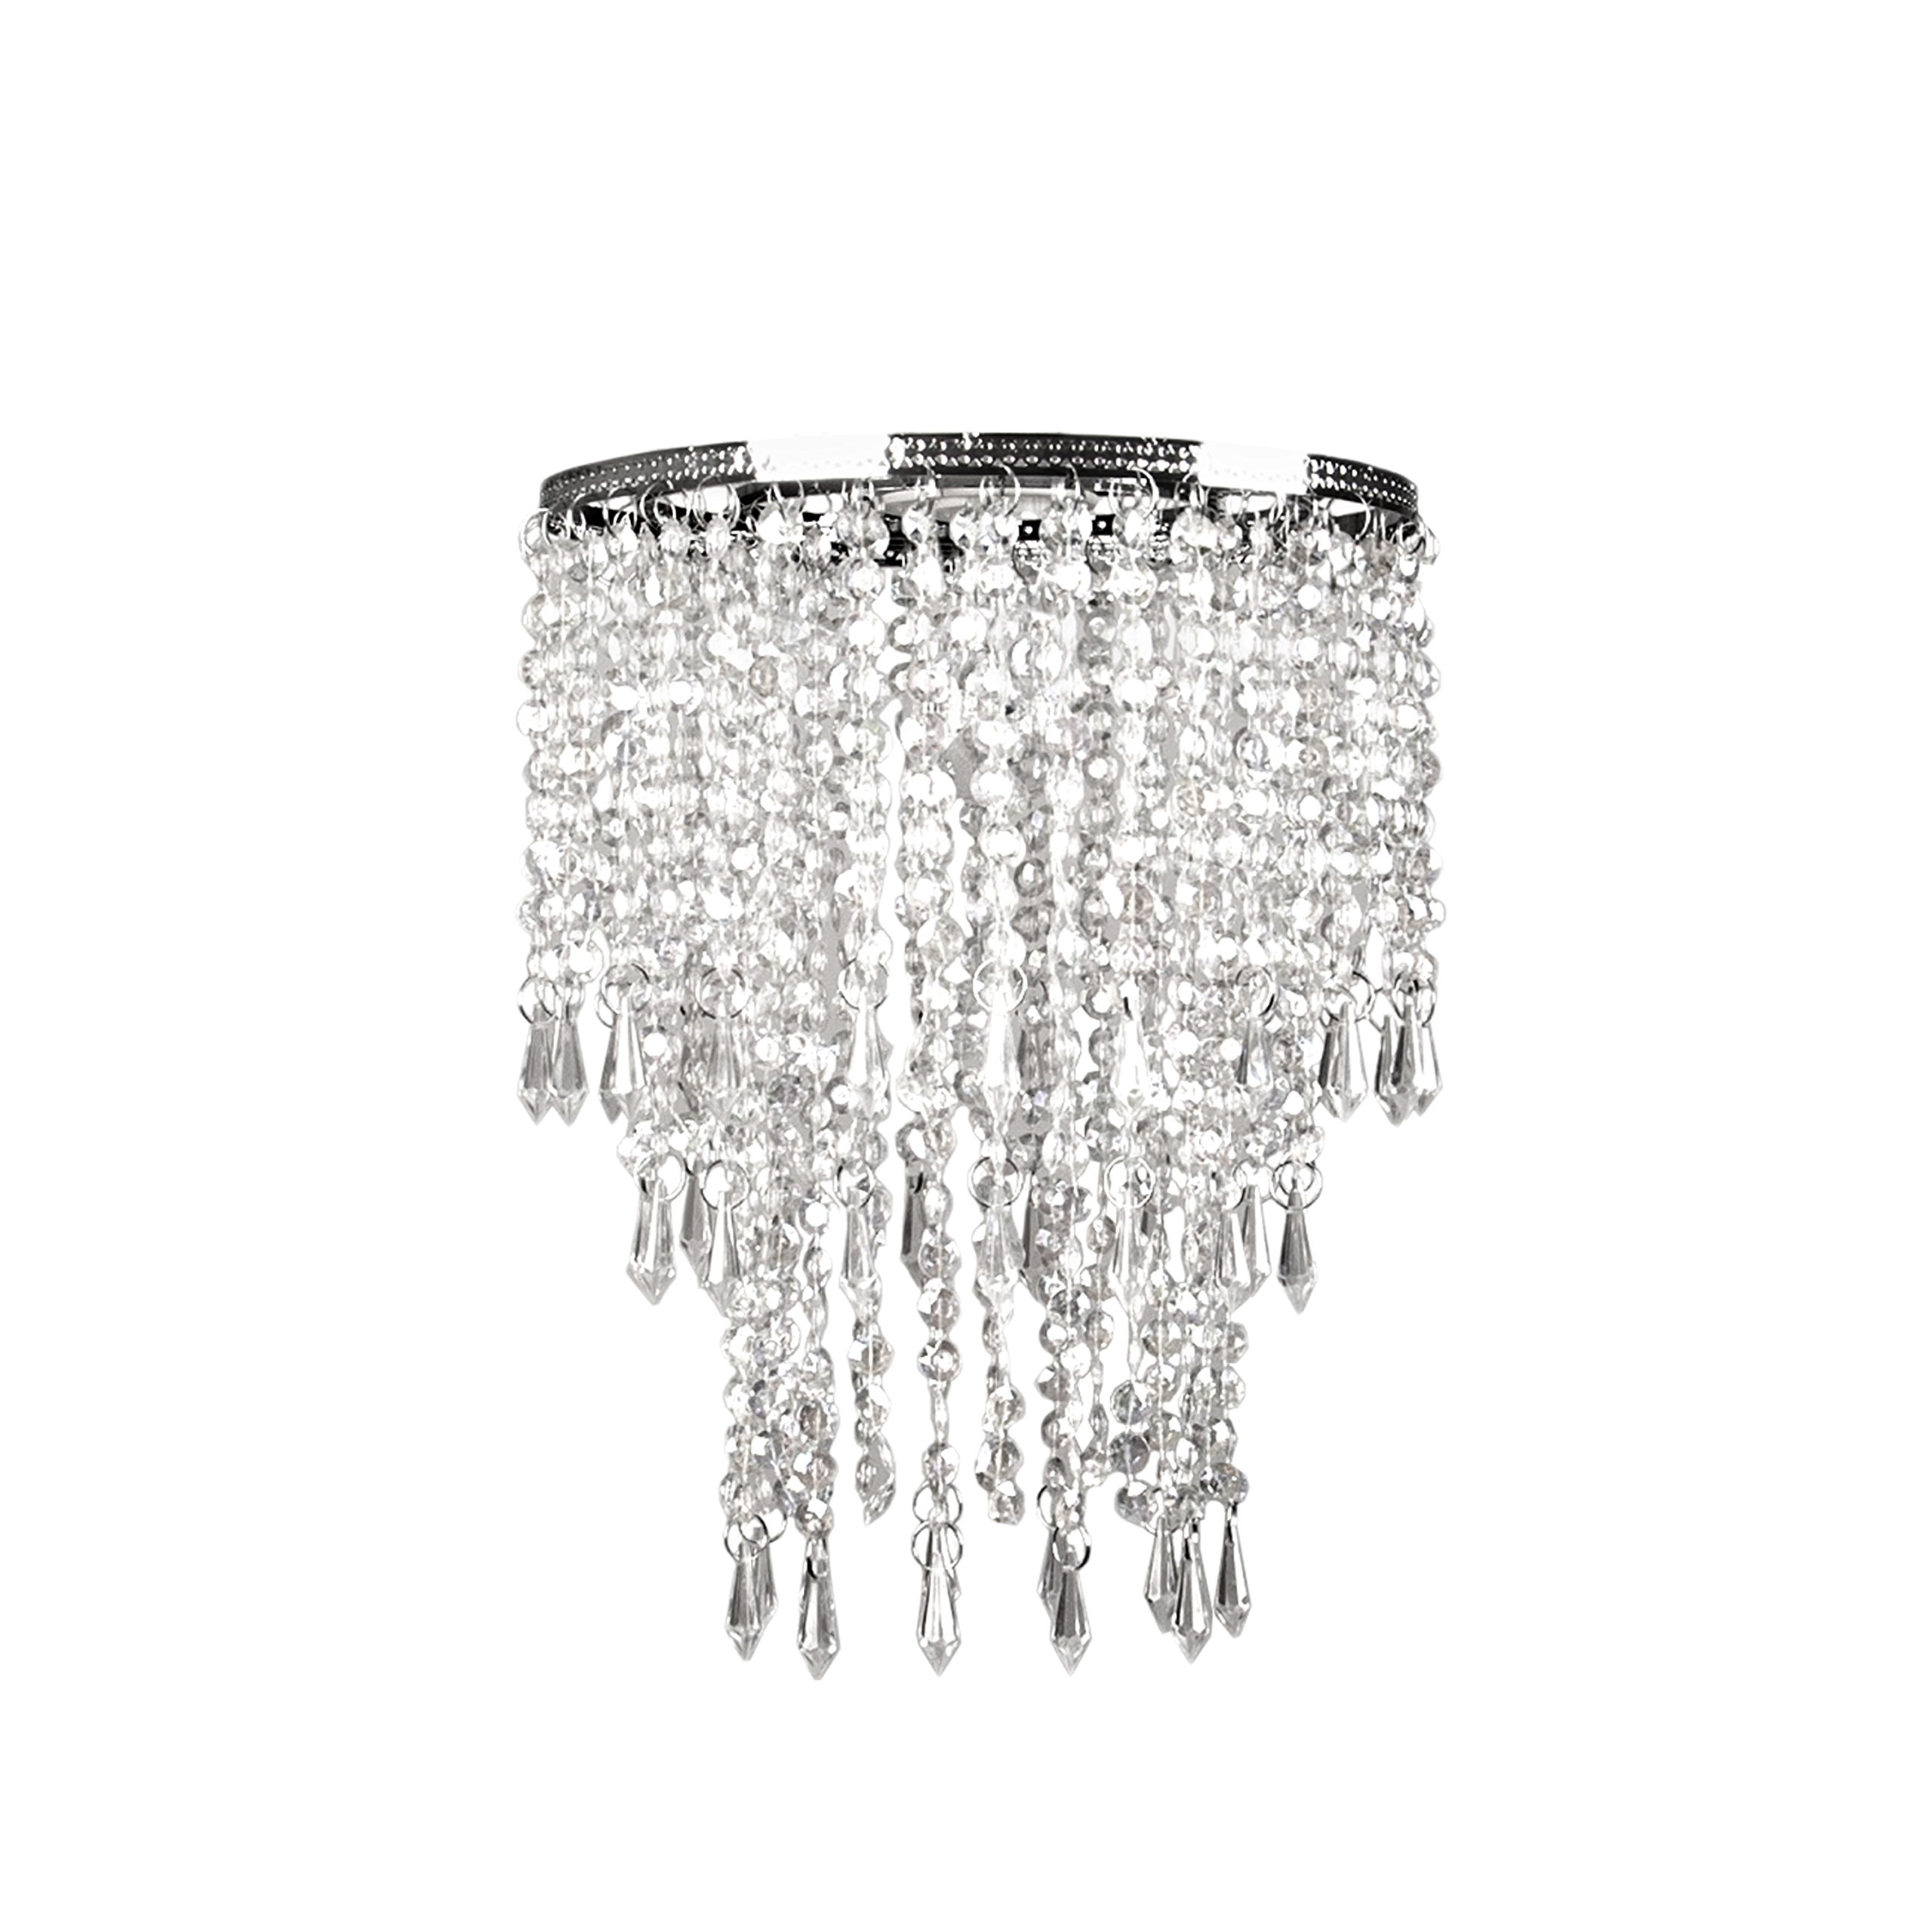 Tadpoles Faux Crystal Triple Layer Dangling Shade, Chandelier Style